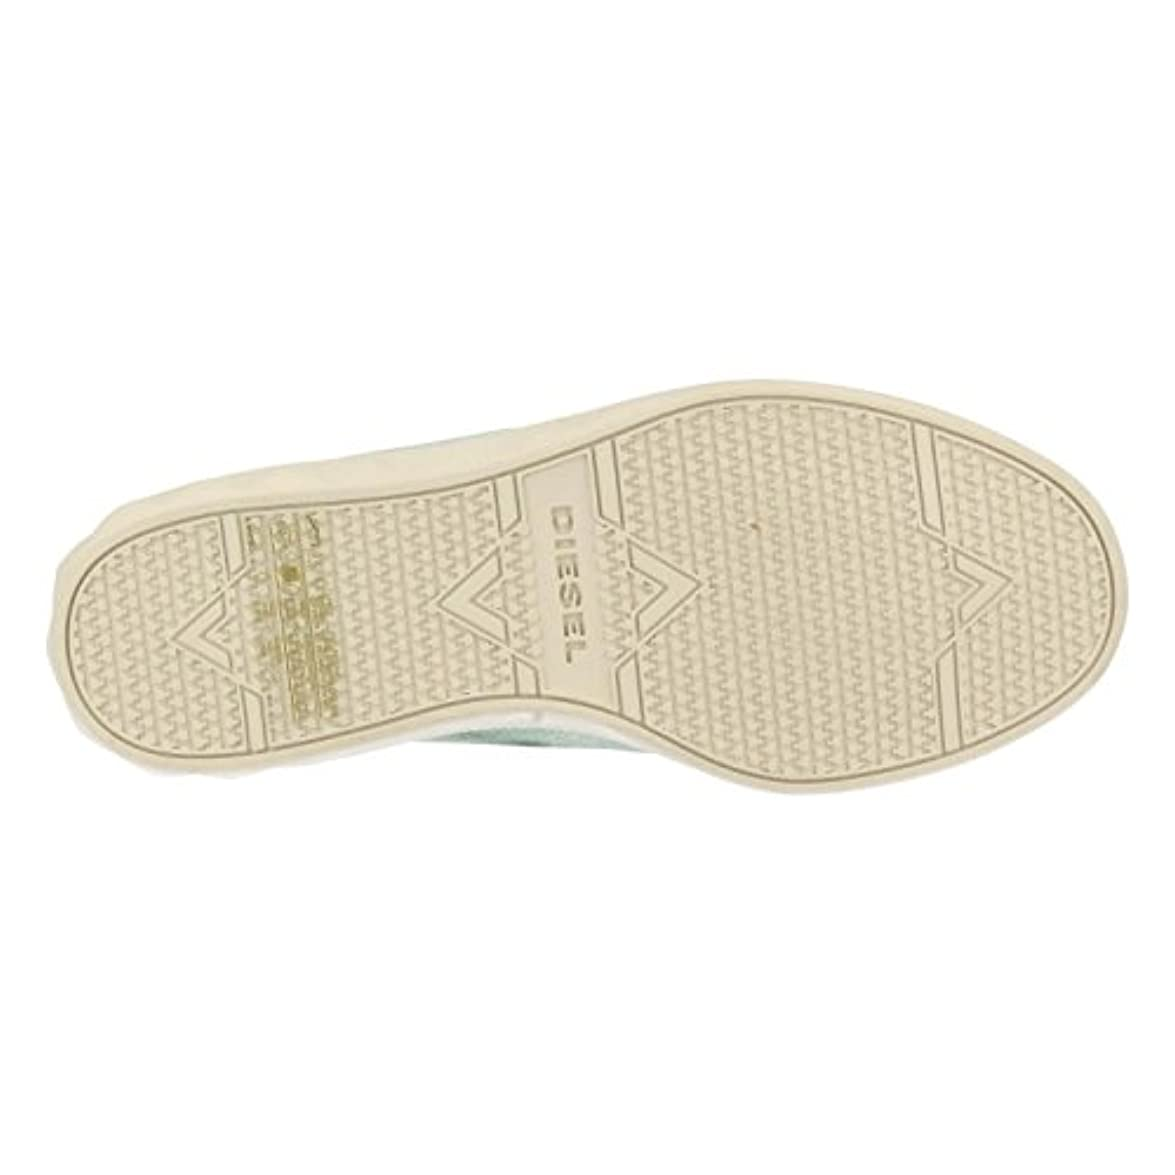 Diesel Slipper Green P1232 H6228 Y01448